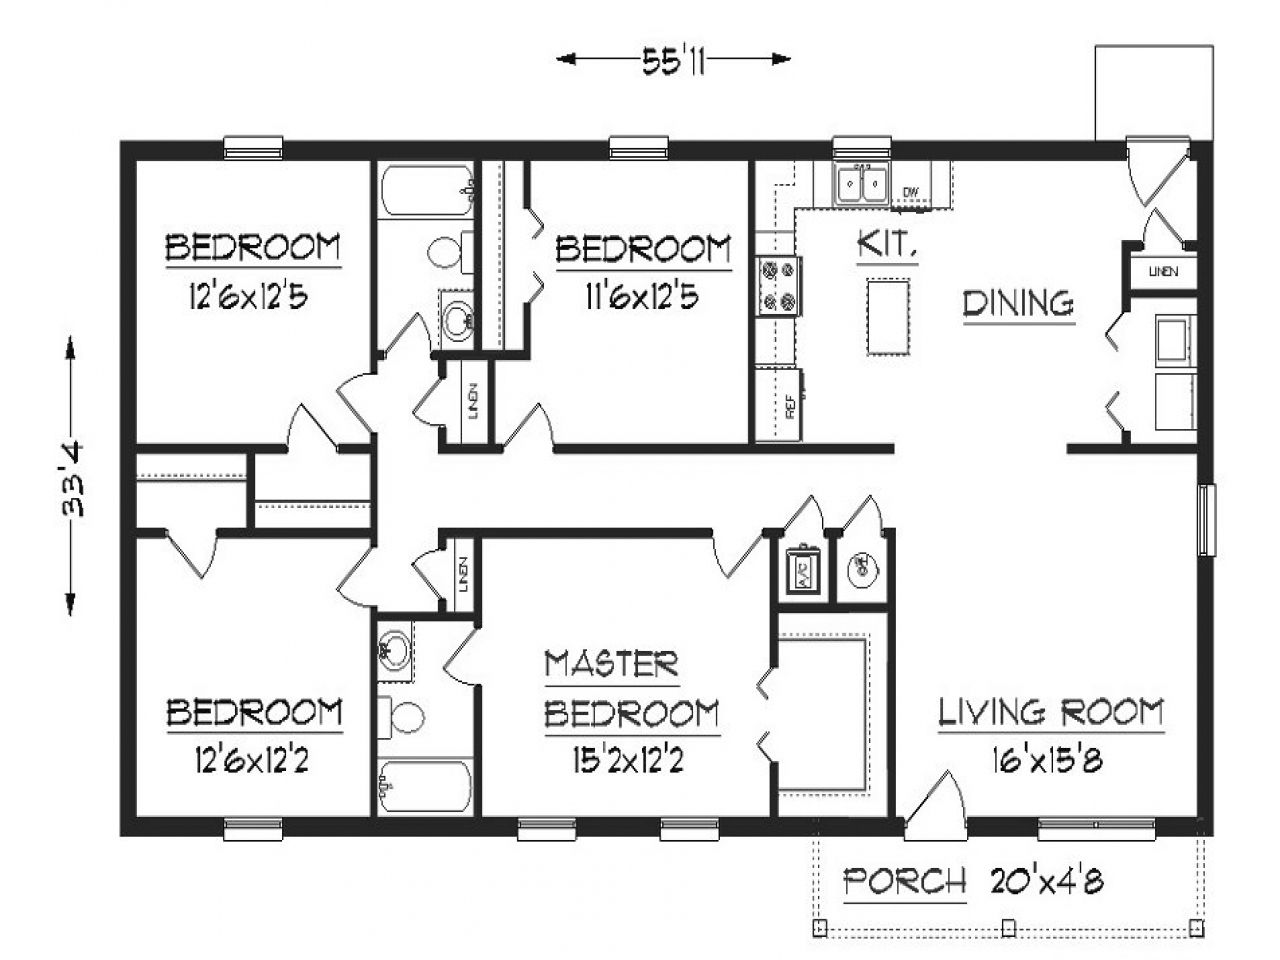 House Floor Plan Philippines Pdf Small House Blueprints One Floor House Plans Small House Floor Plans